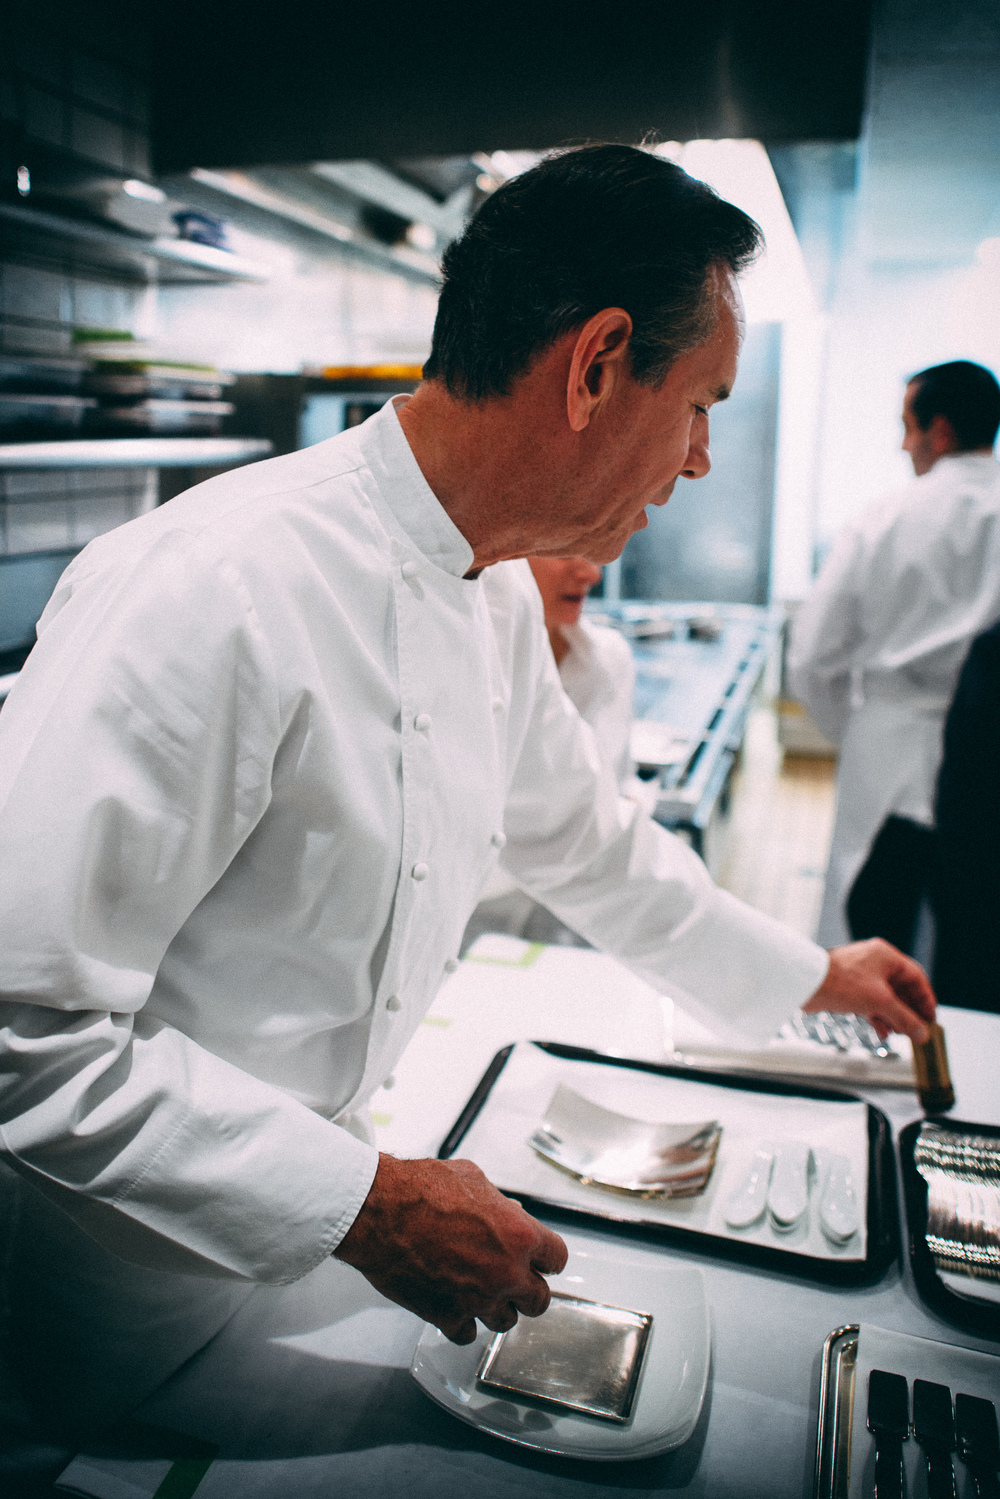 Chef Thomas Keller in the kitchen